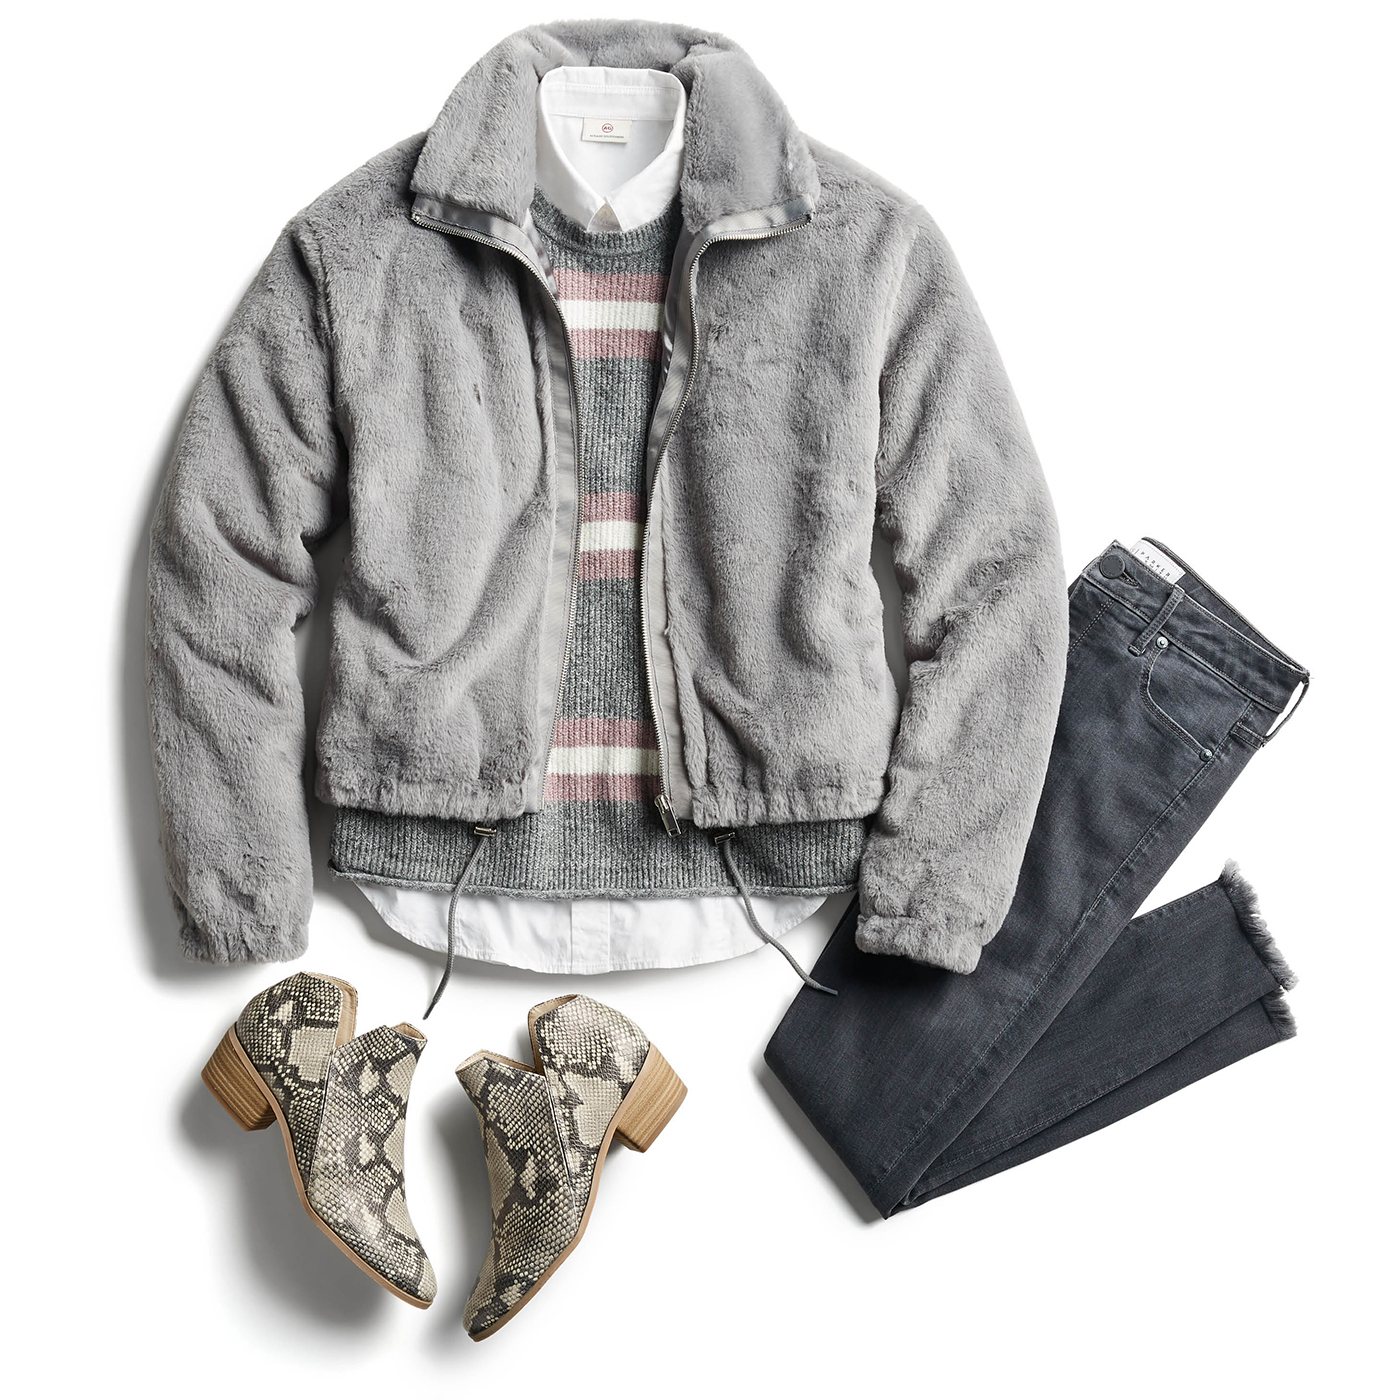 grey fleece jacket and grey jeans